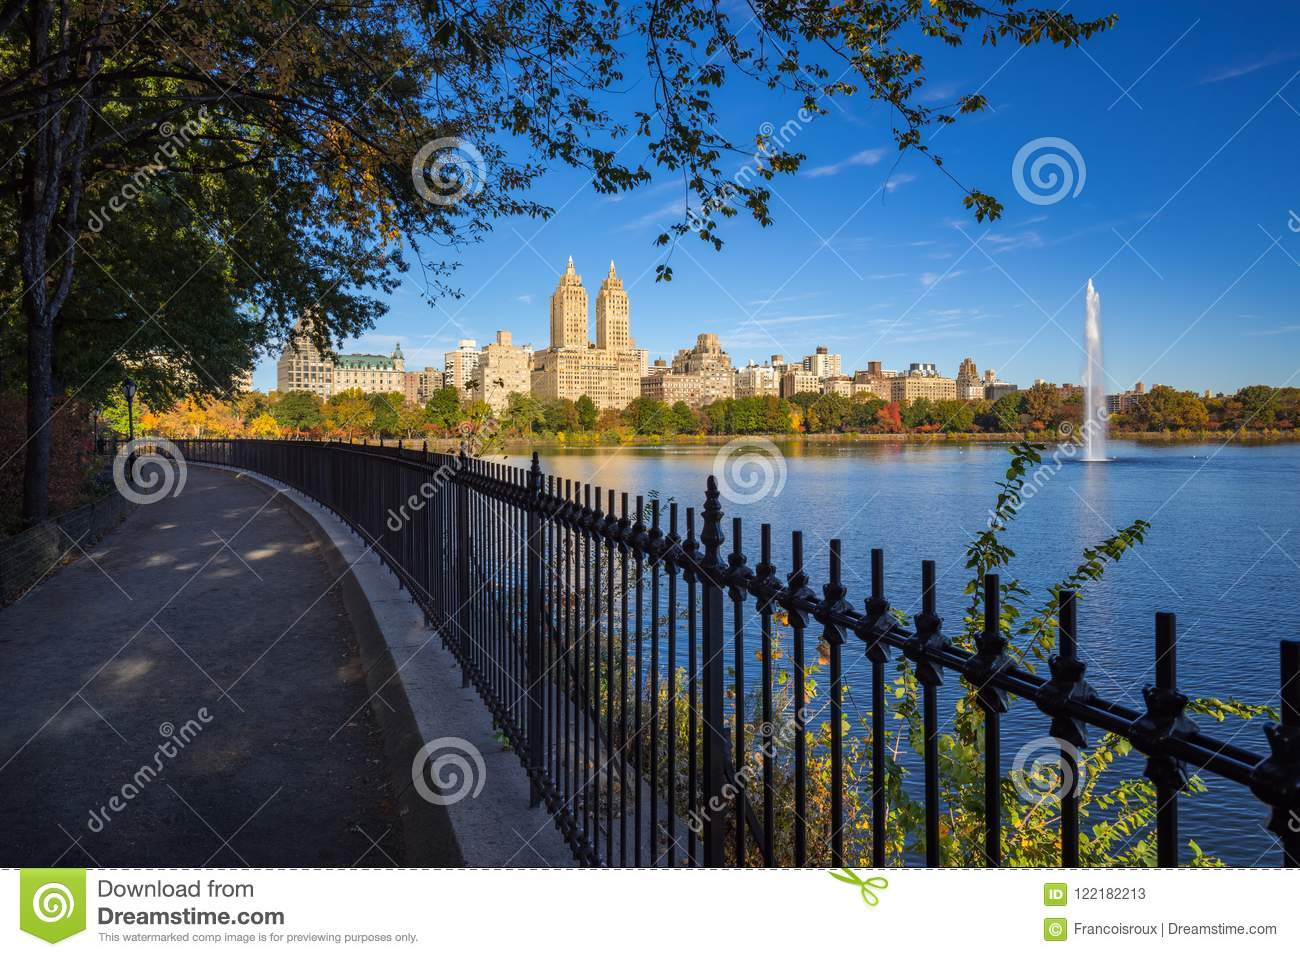 8,8 Park Kennedy Photos - Free & Royalty-Free Stock Photos from